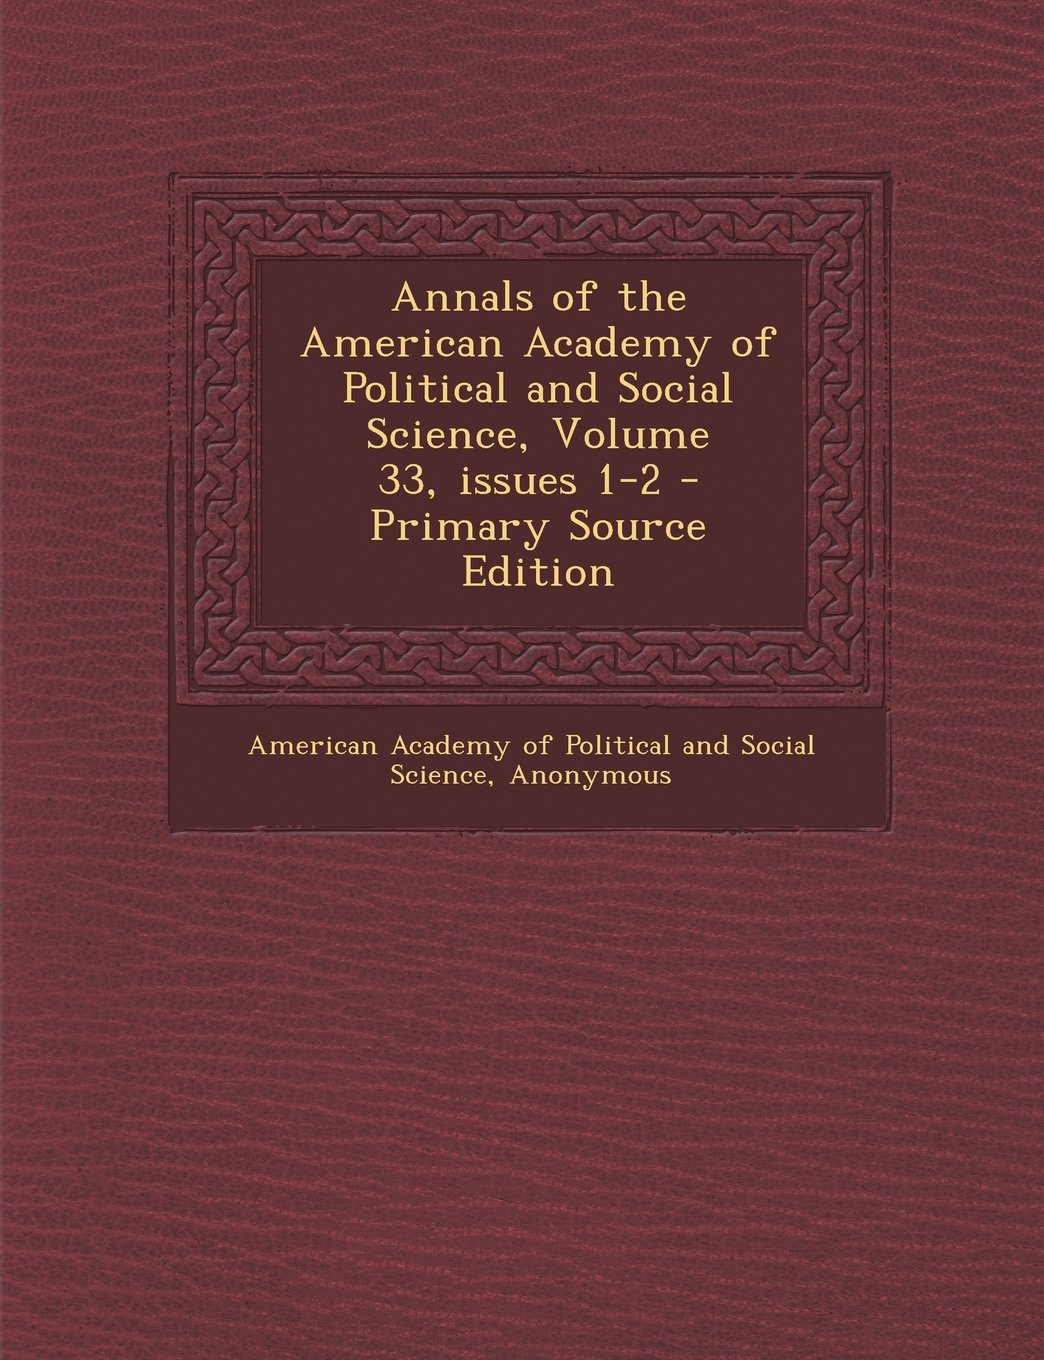 Read Online Annals of the American Academy of Political and Social Science, Volume 33, issues 1-2 pdf epub